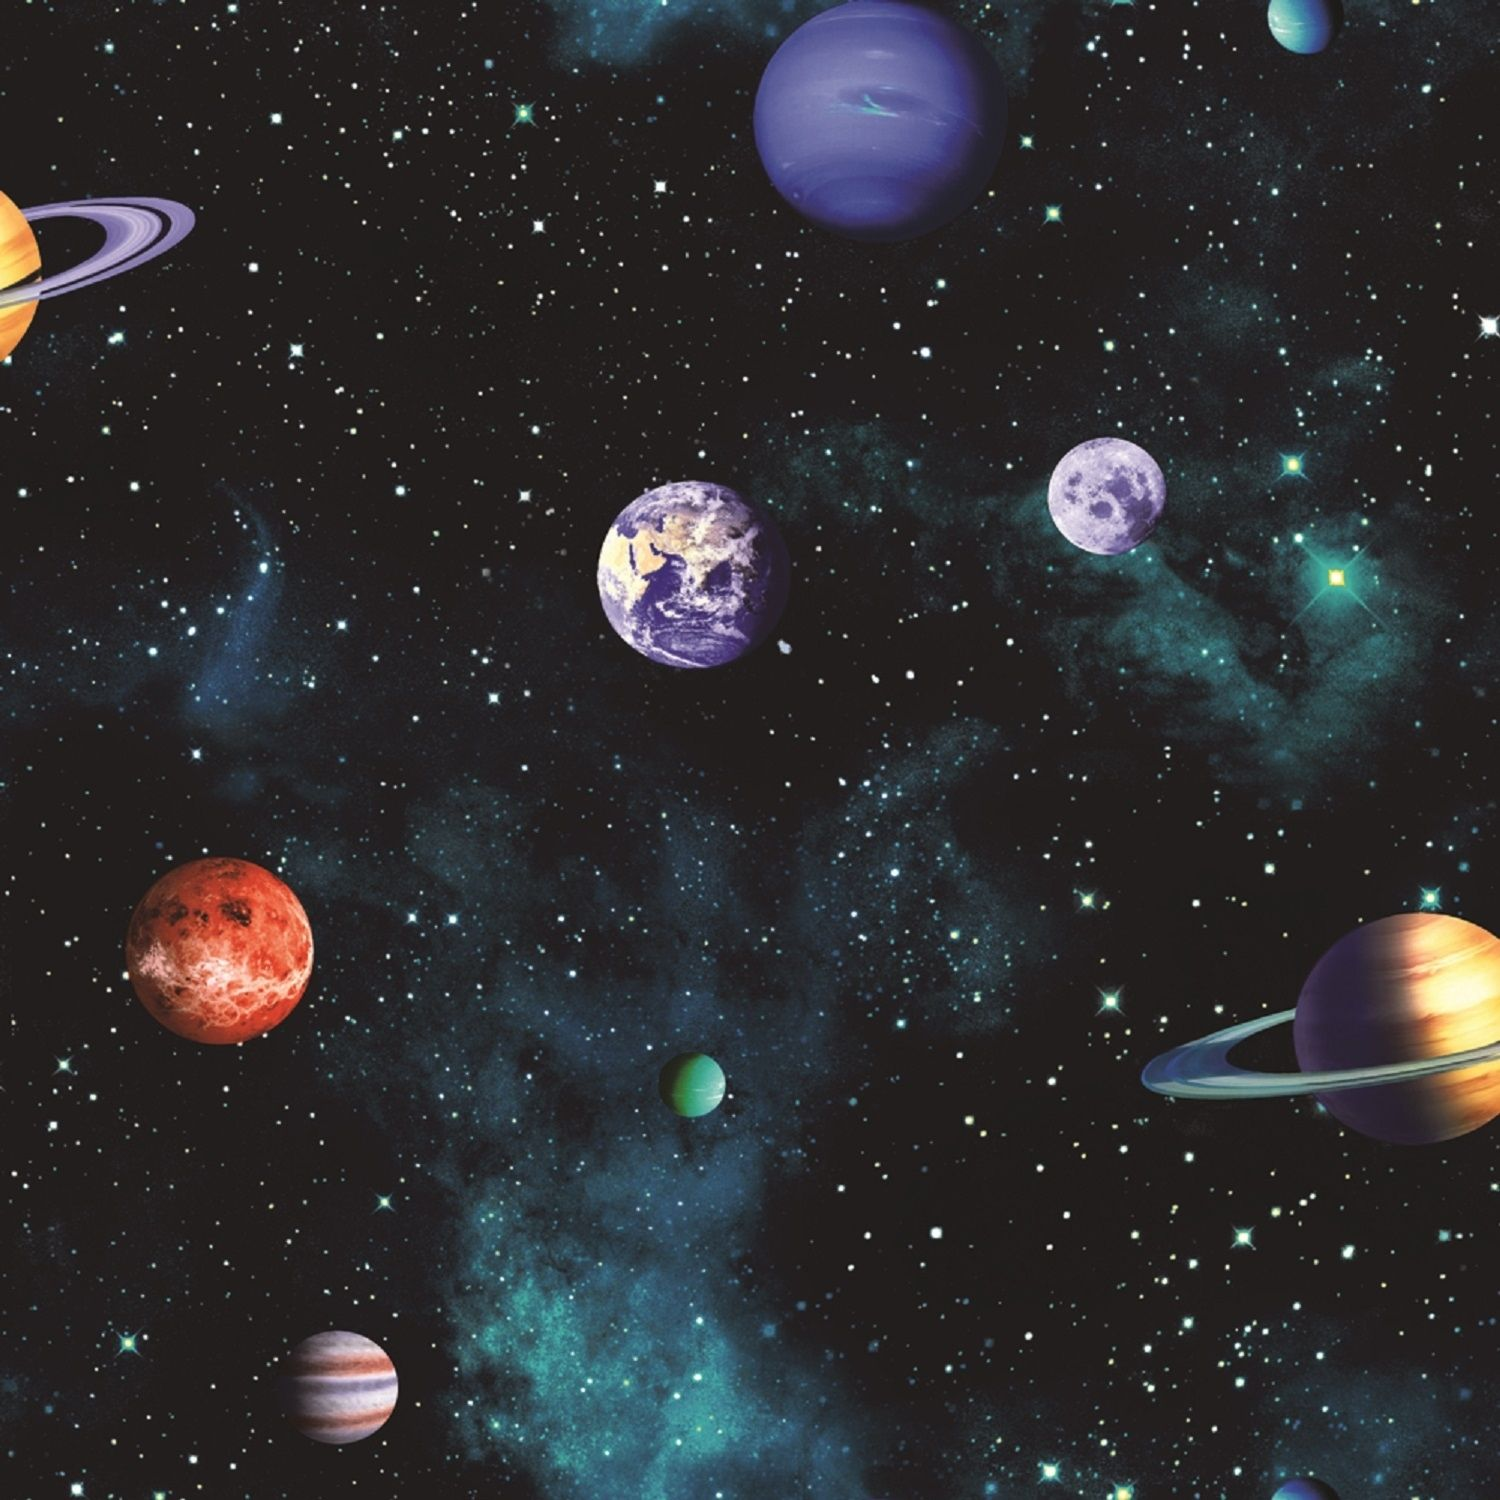 Arthouse Cosmos Wallpaper Outer Space Wallpaper Charcoal Wallpaper Planets Wallpaper